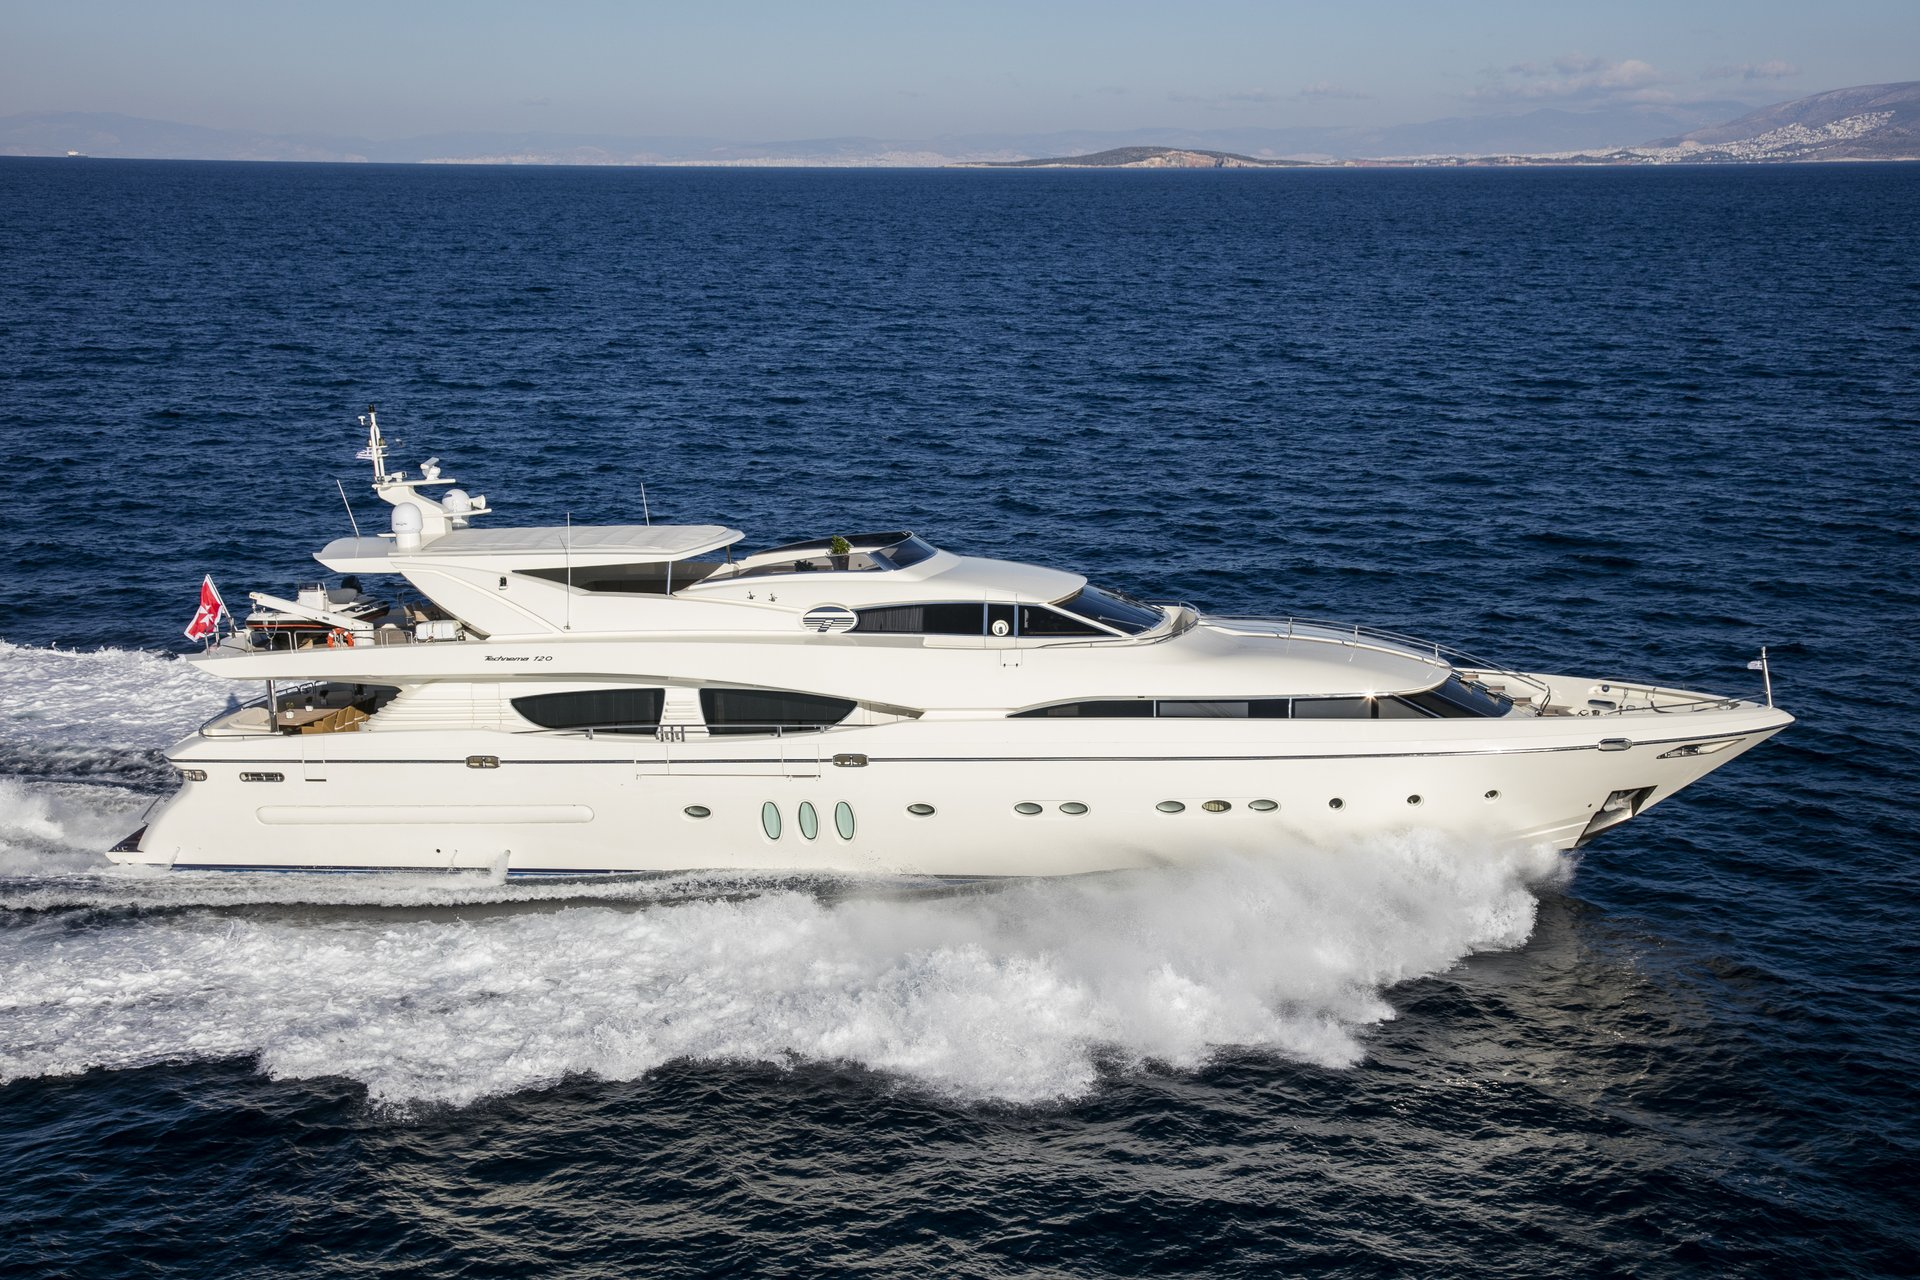 M/Y RINI yacht for charter sailing side view